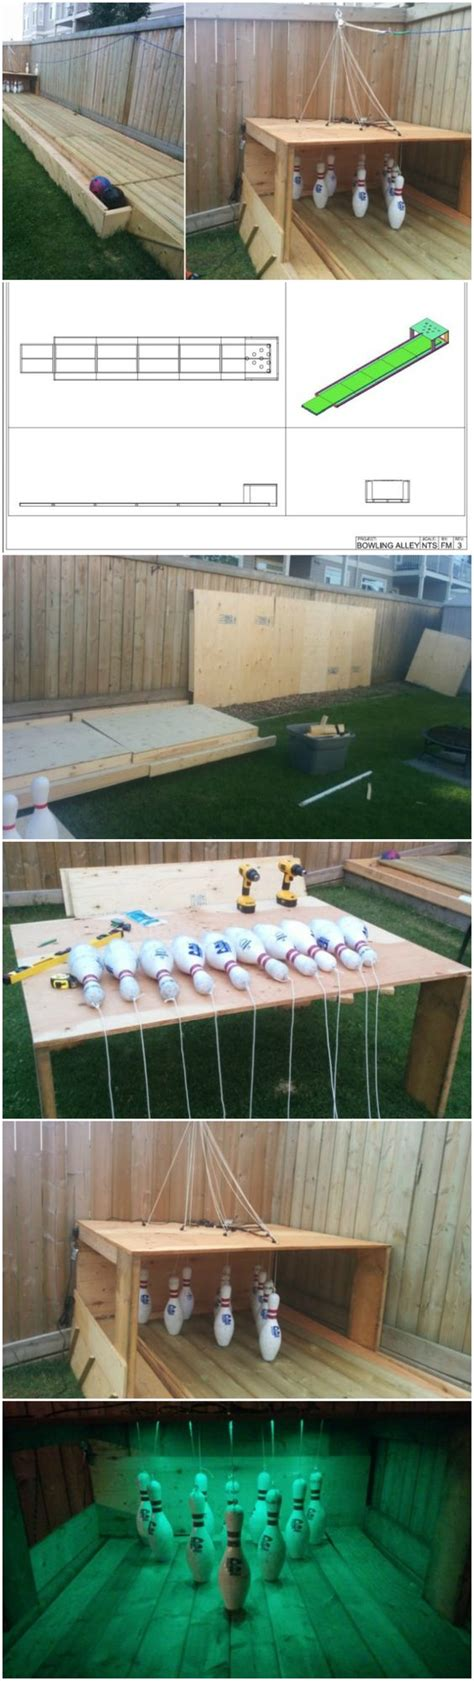 diy backyard bowling alley backyards bowling and diy and crafts on pinterest